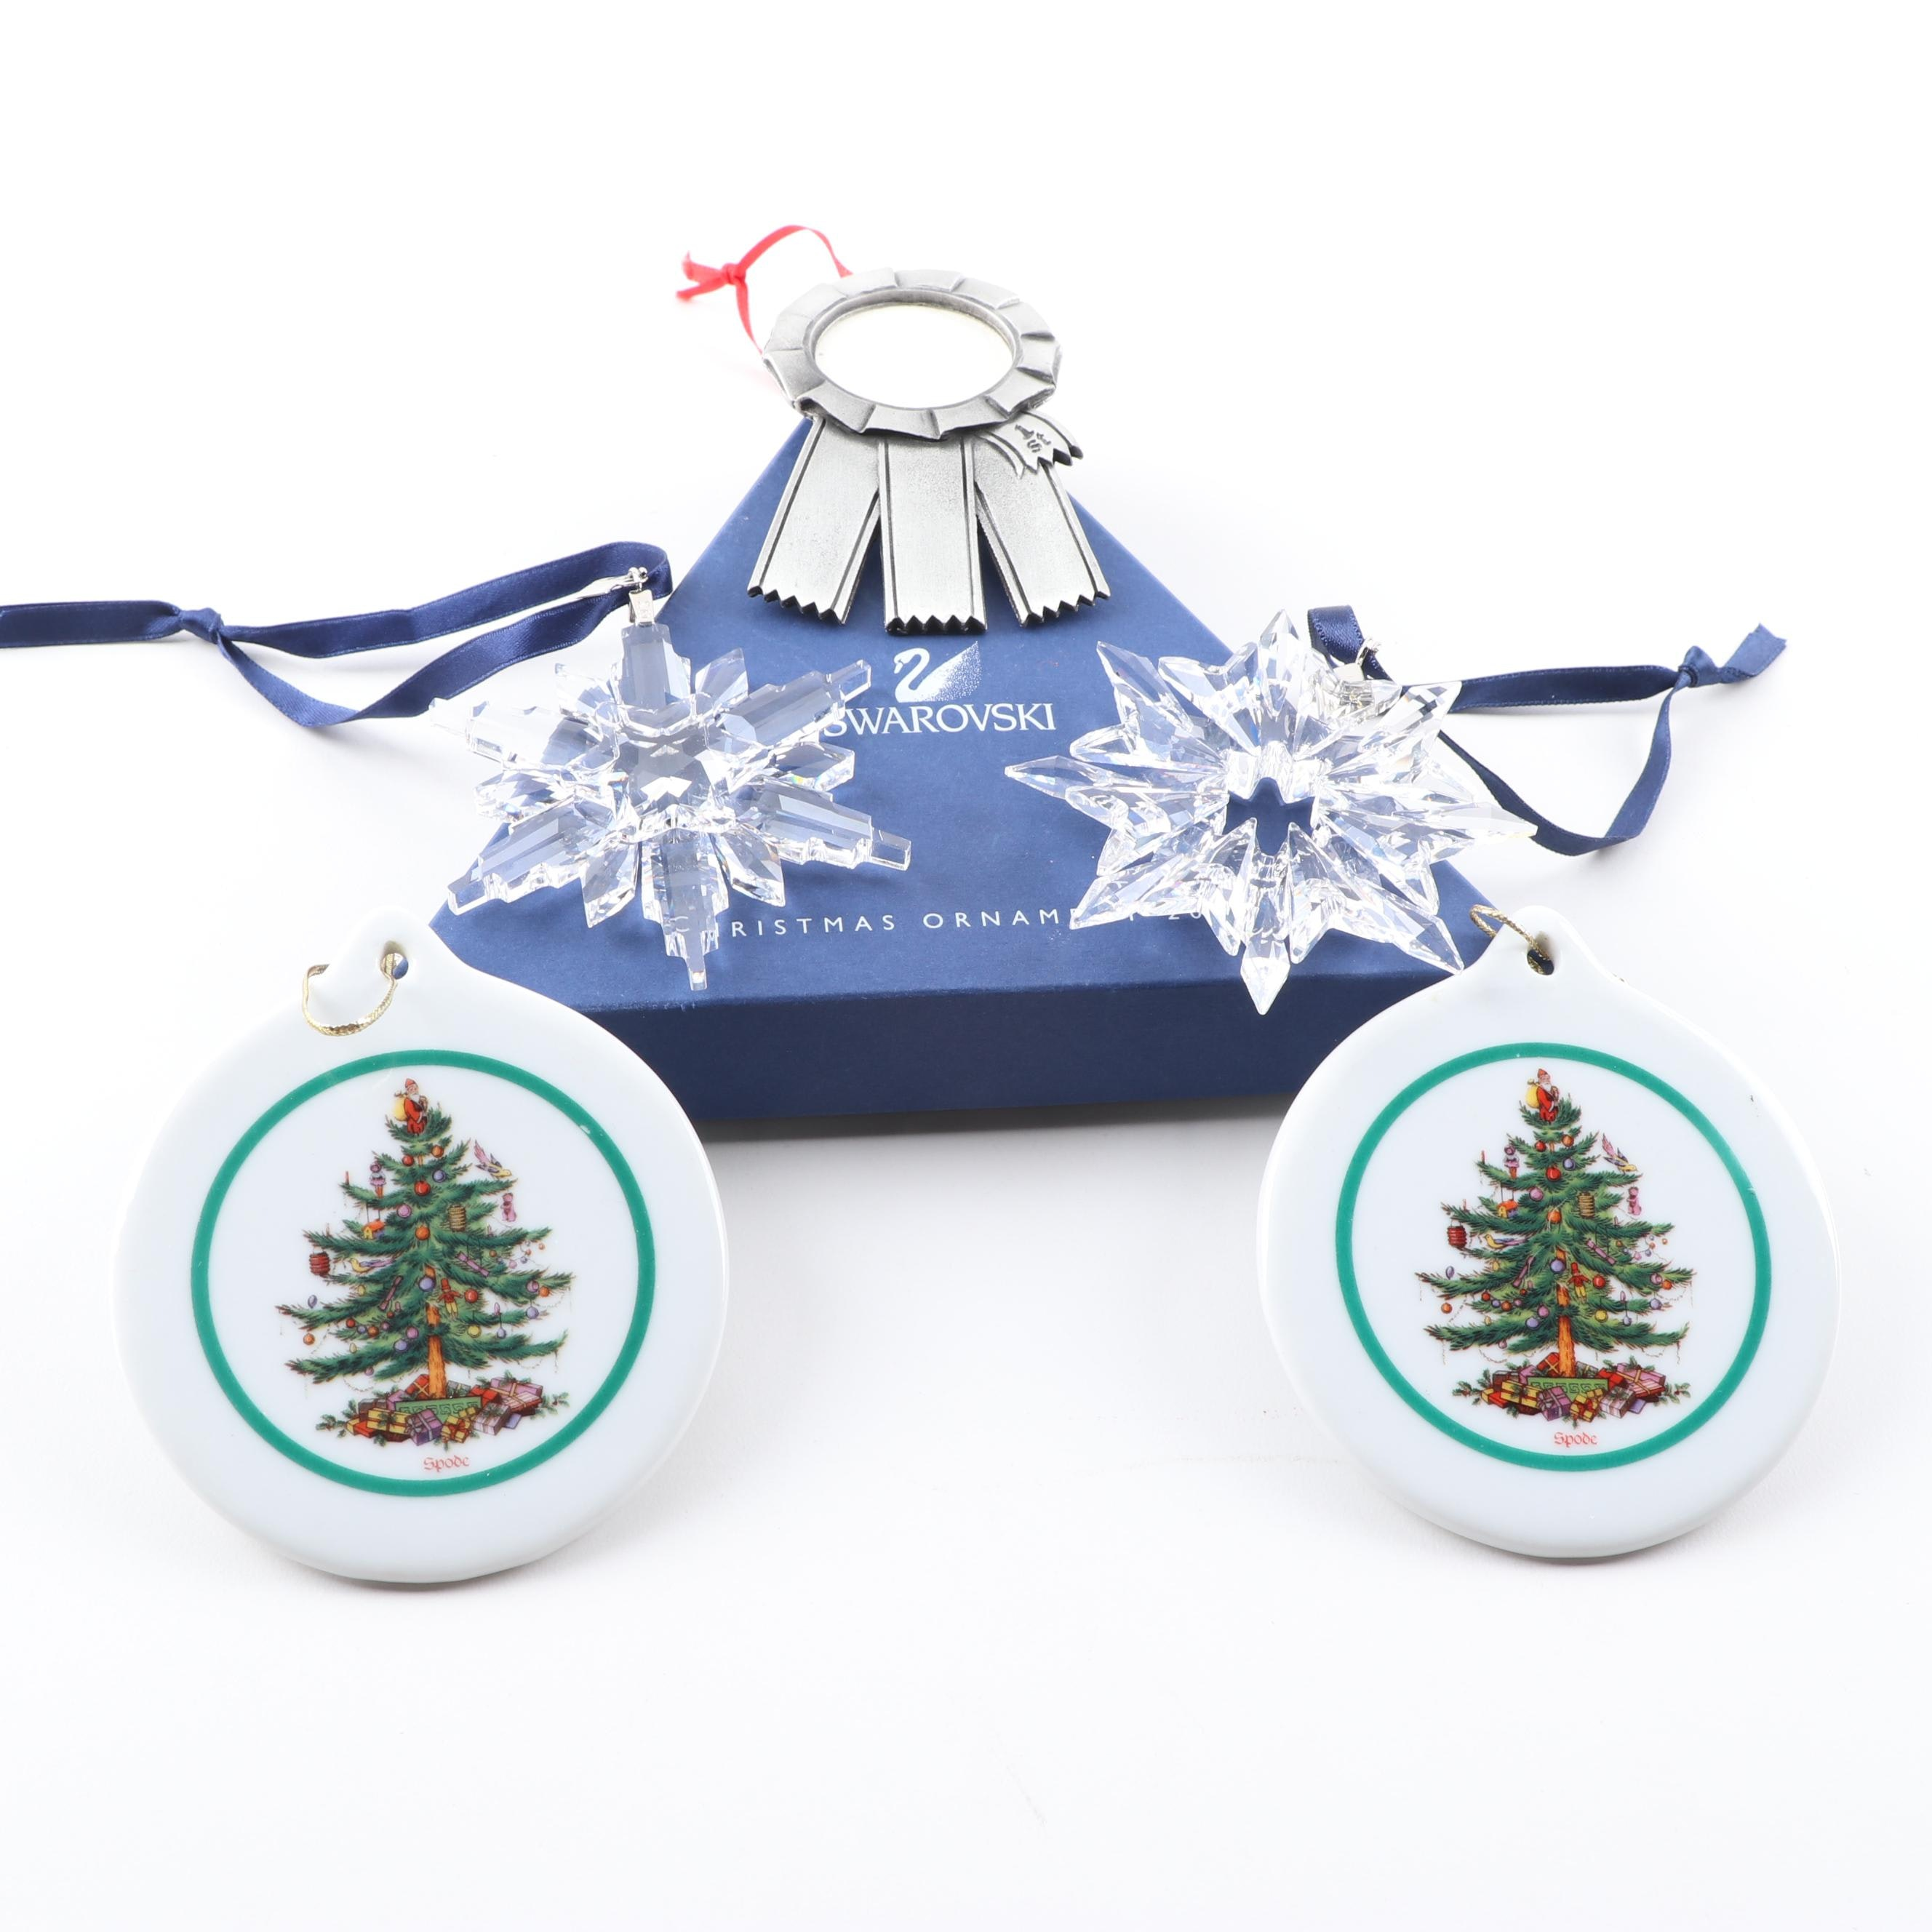 Christmas Ornaments Featuring Swarovski